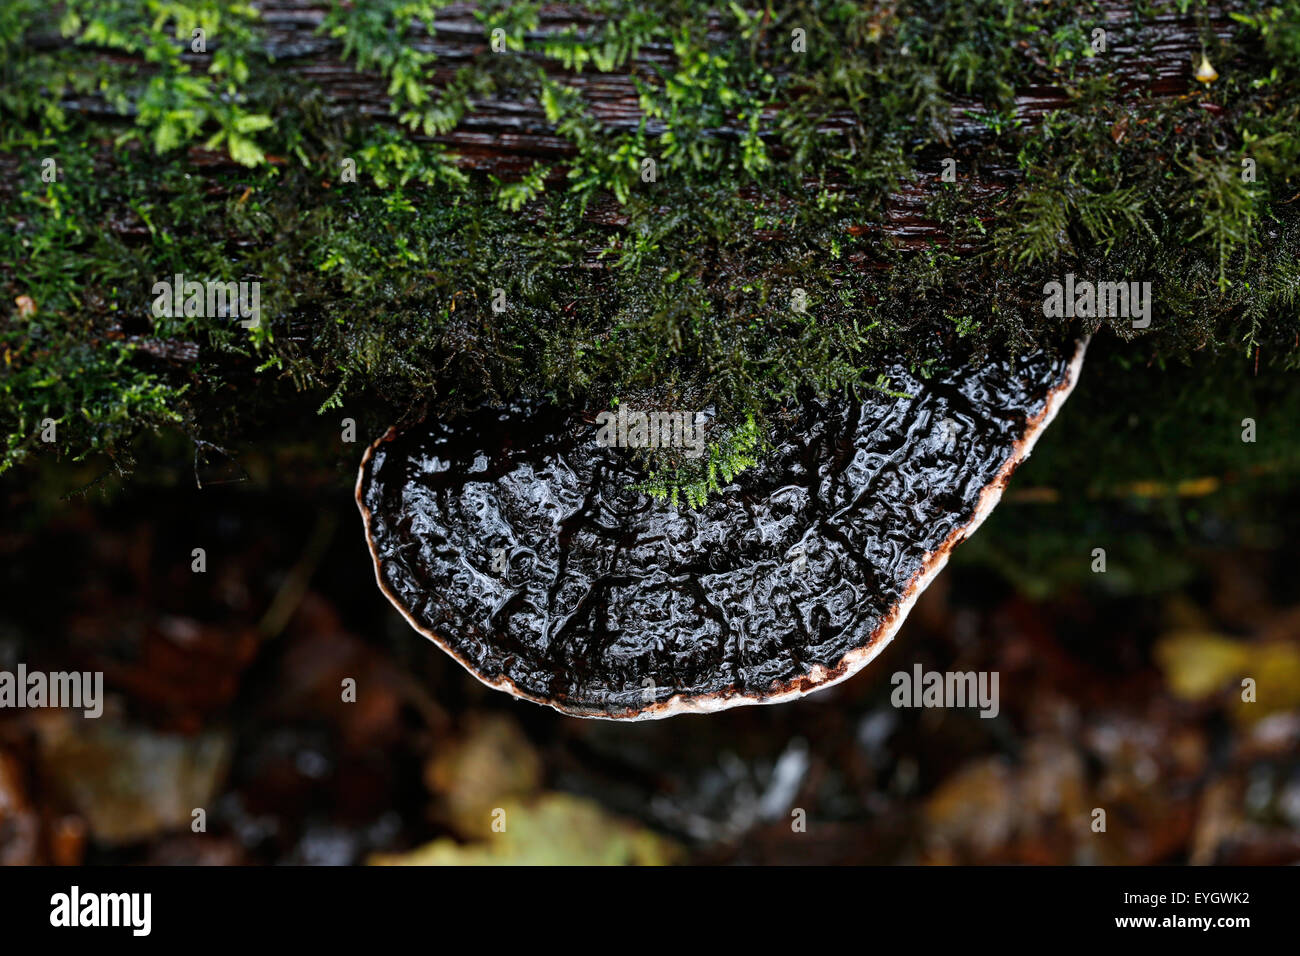 A large flat bracket fungi ot piptoporus fungi growing on a fallen tree in an English woodland. The area is wet - Stock Image